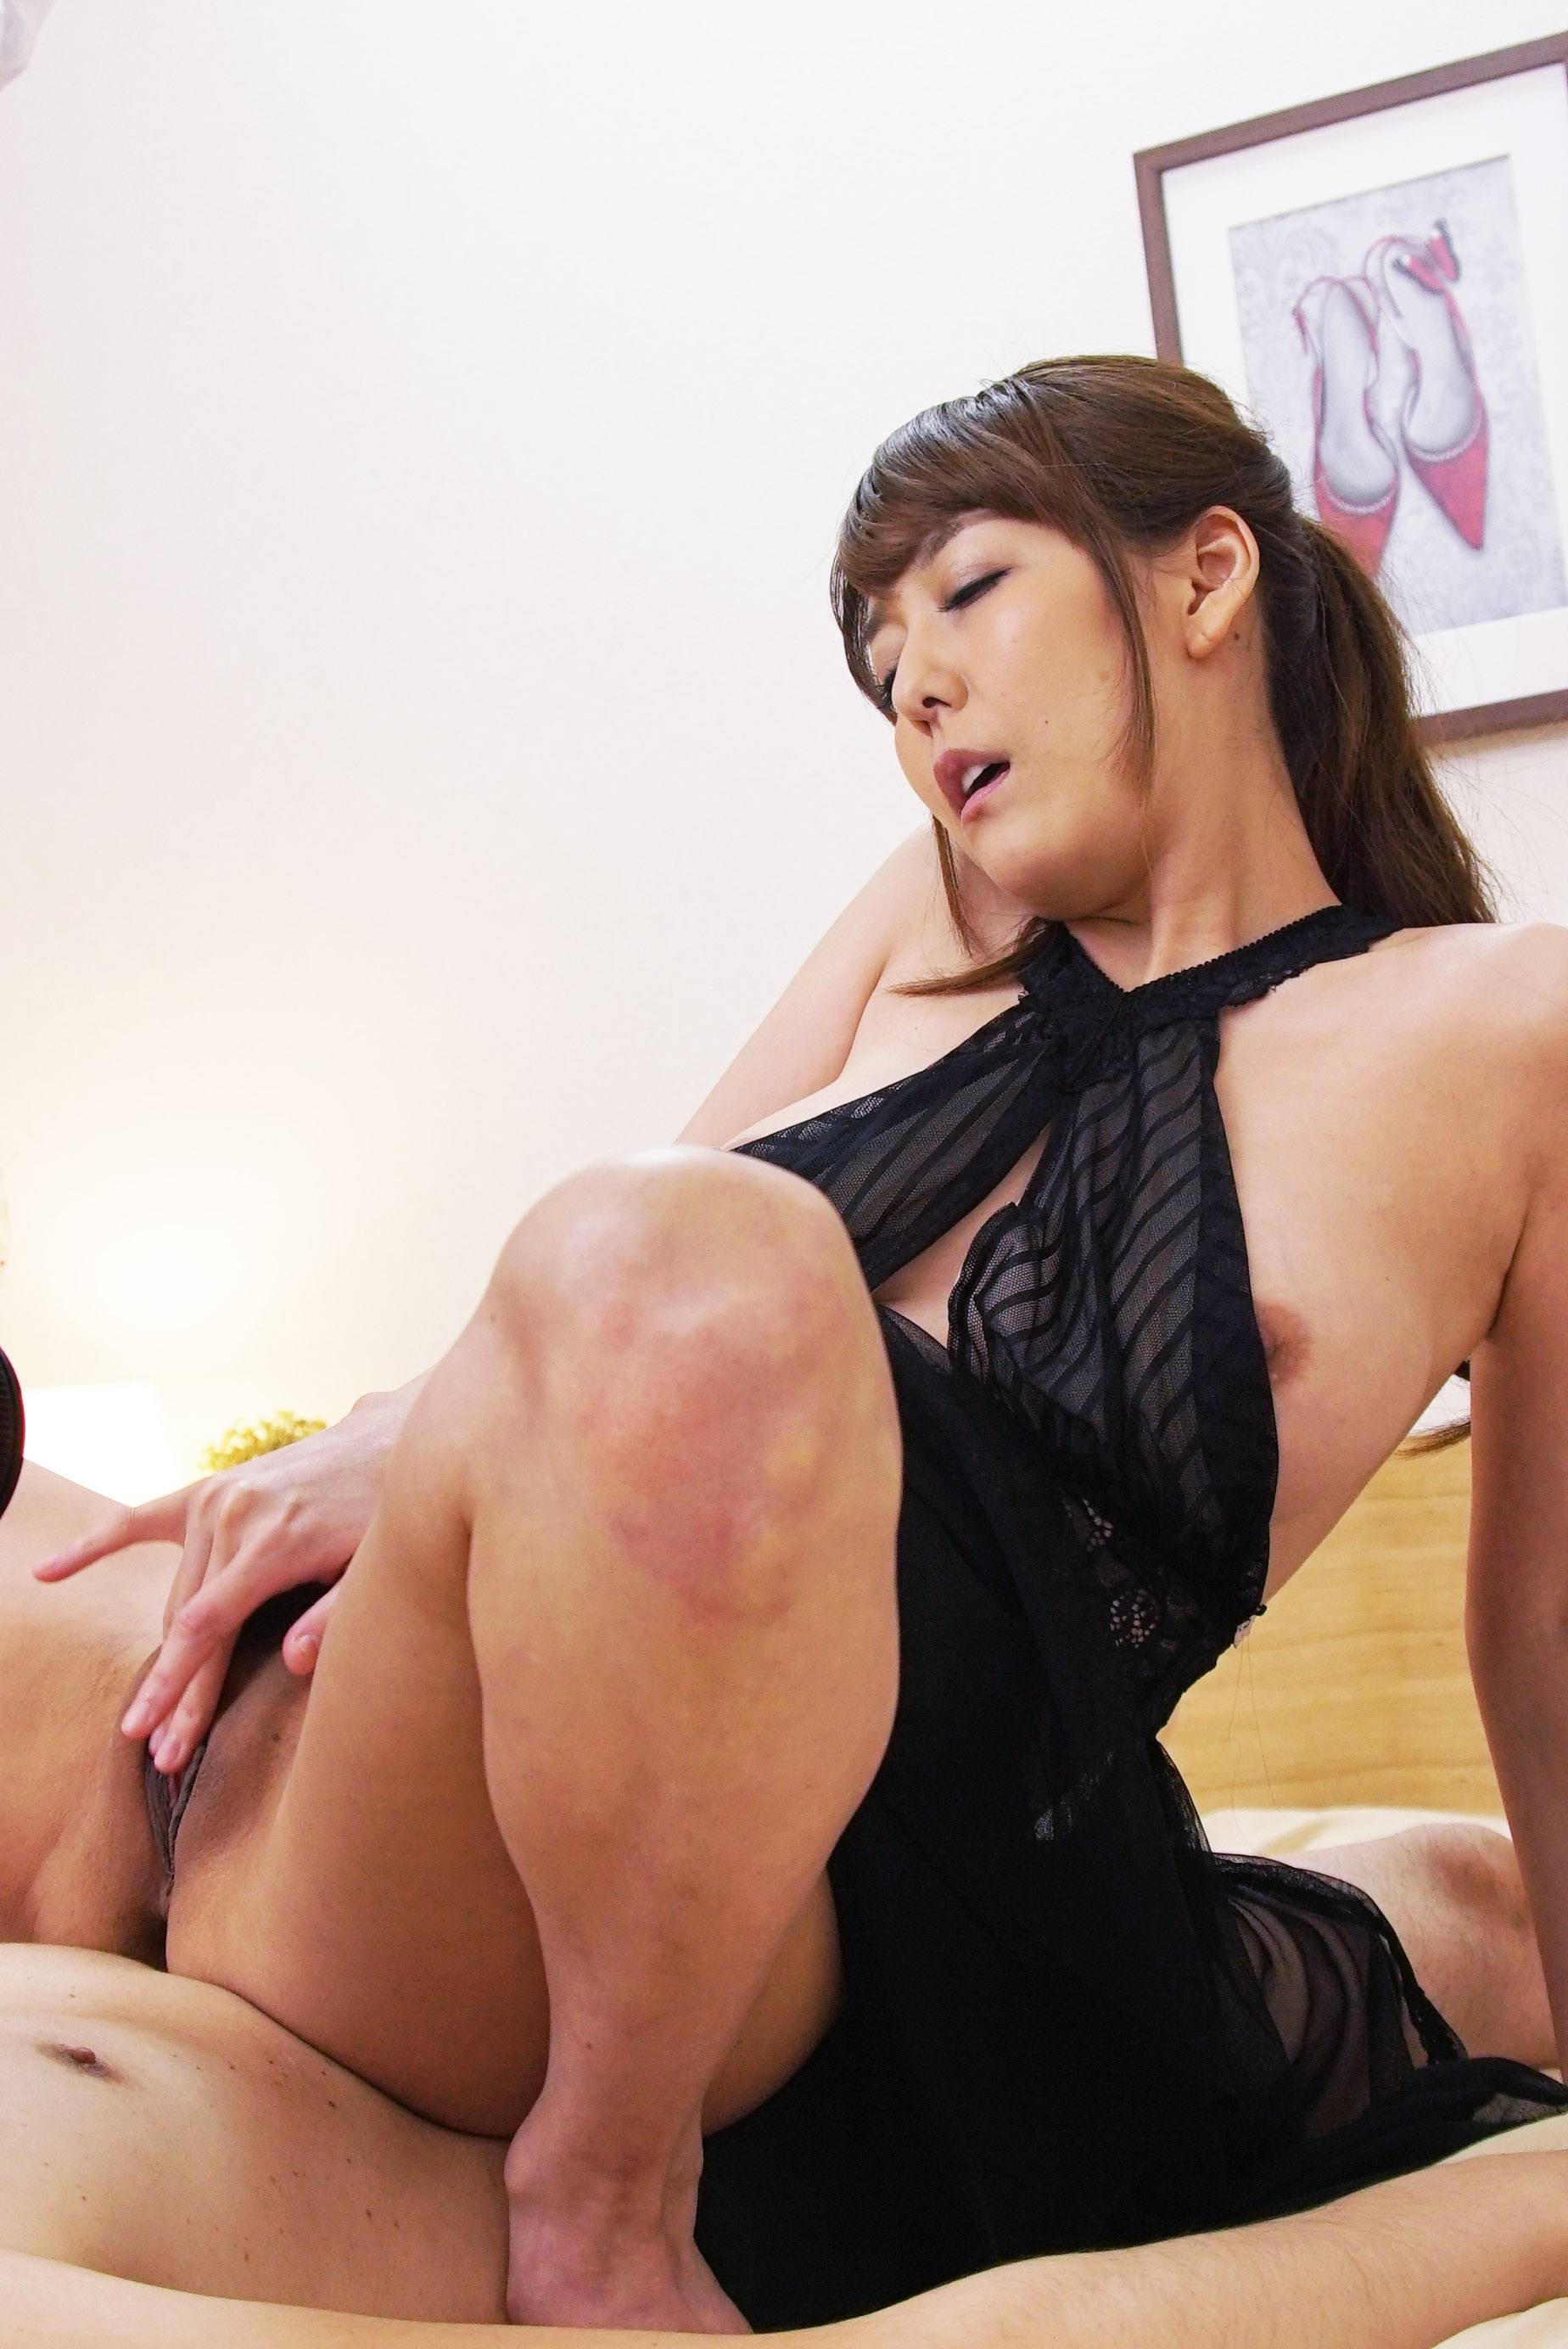 Free Squirt Videos pertaining to squirting lover asagiri akari wants to make date with you - vr